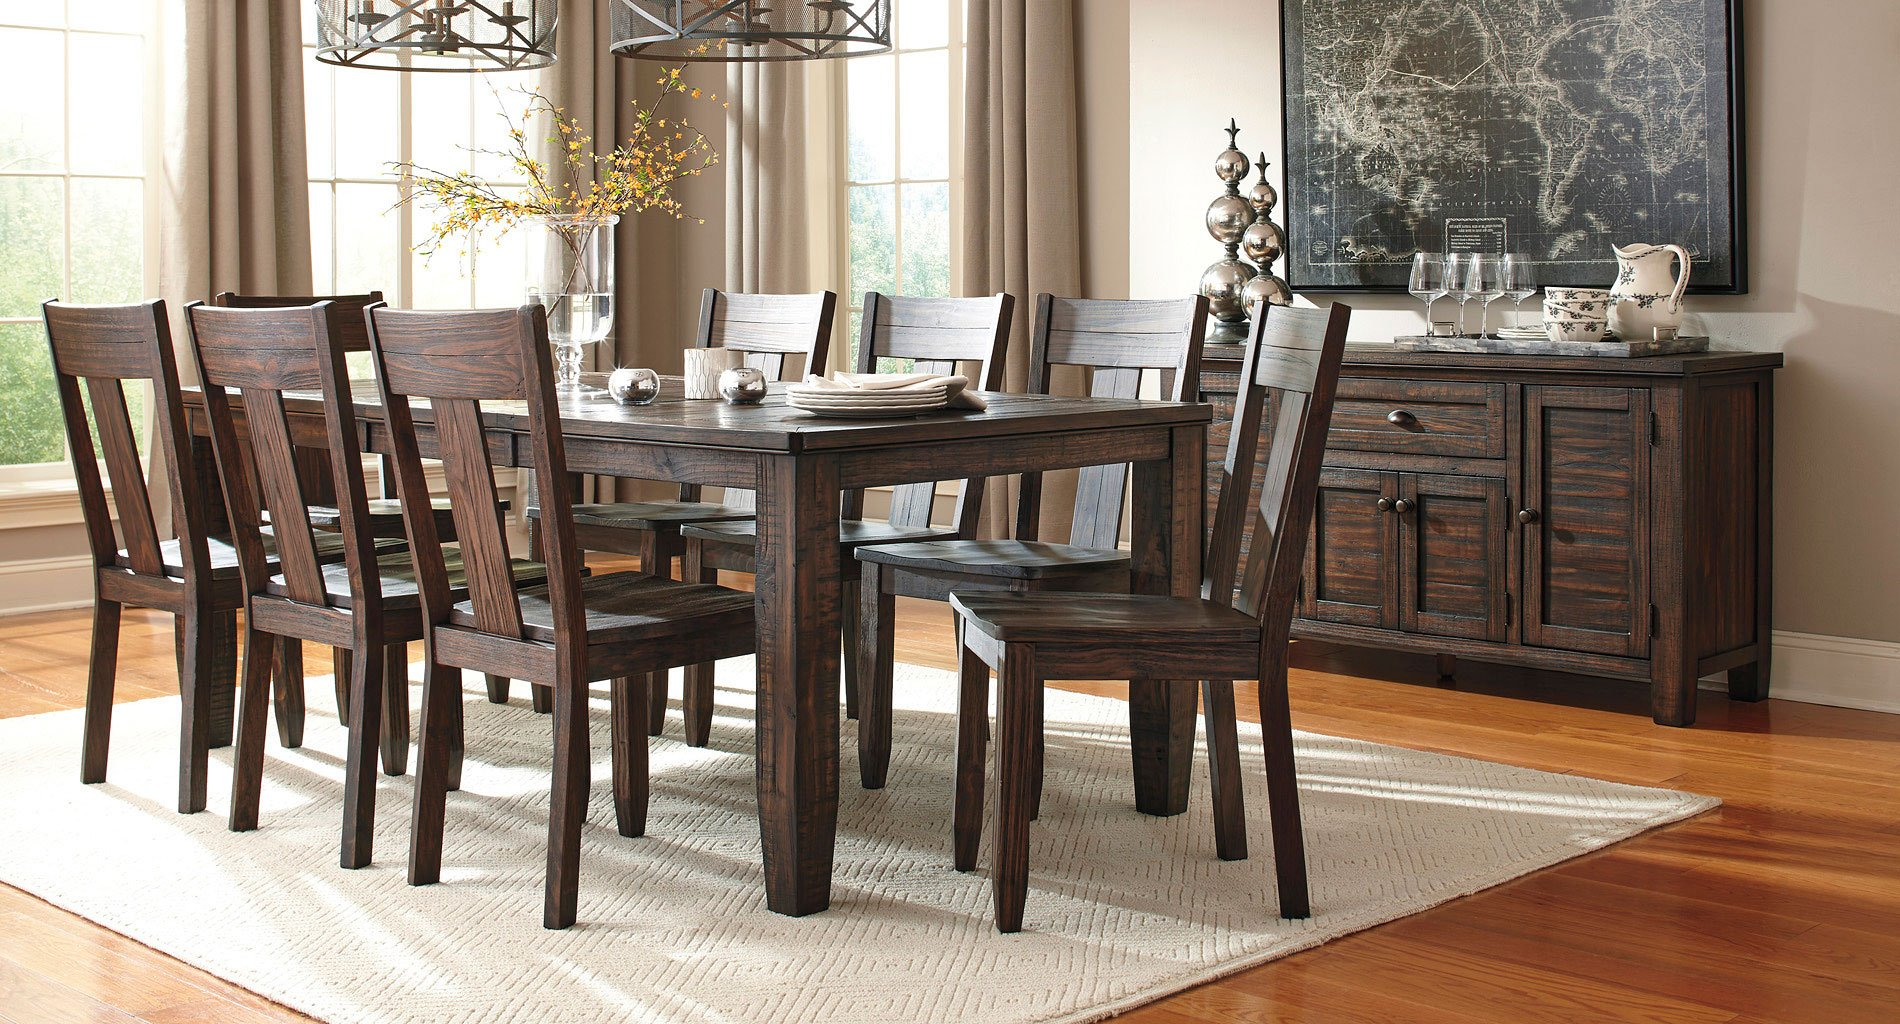 Trudell Rectangular Dining Room Set By Signature Design By Ashley 2 Review S Furniturepick